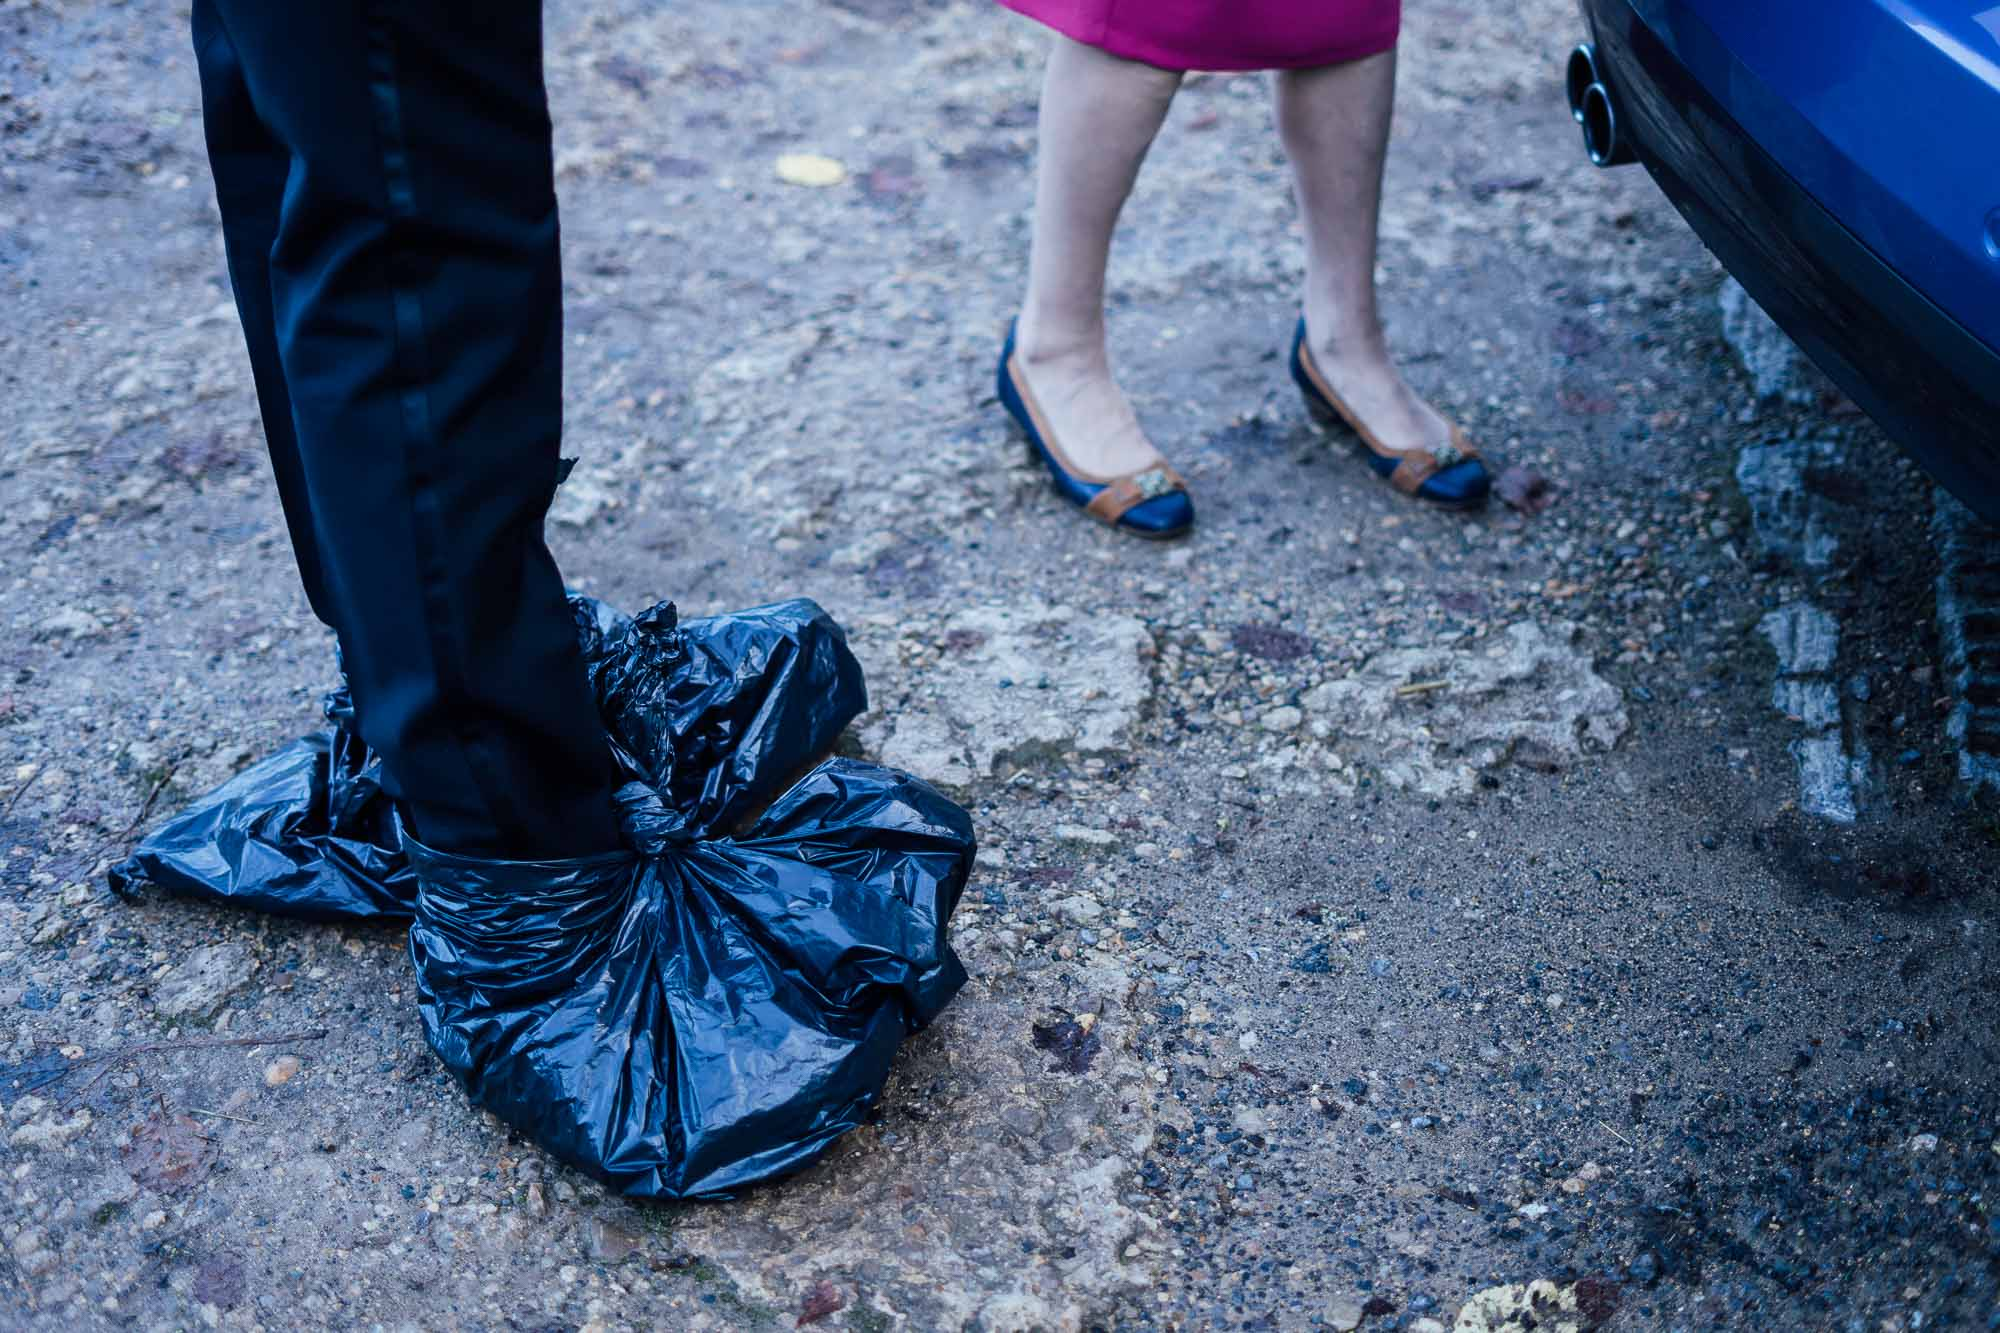 groom with bin bags on shoes